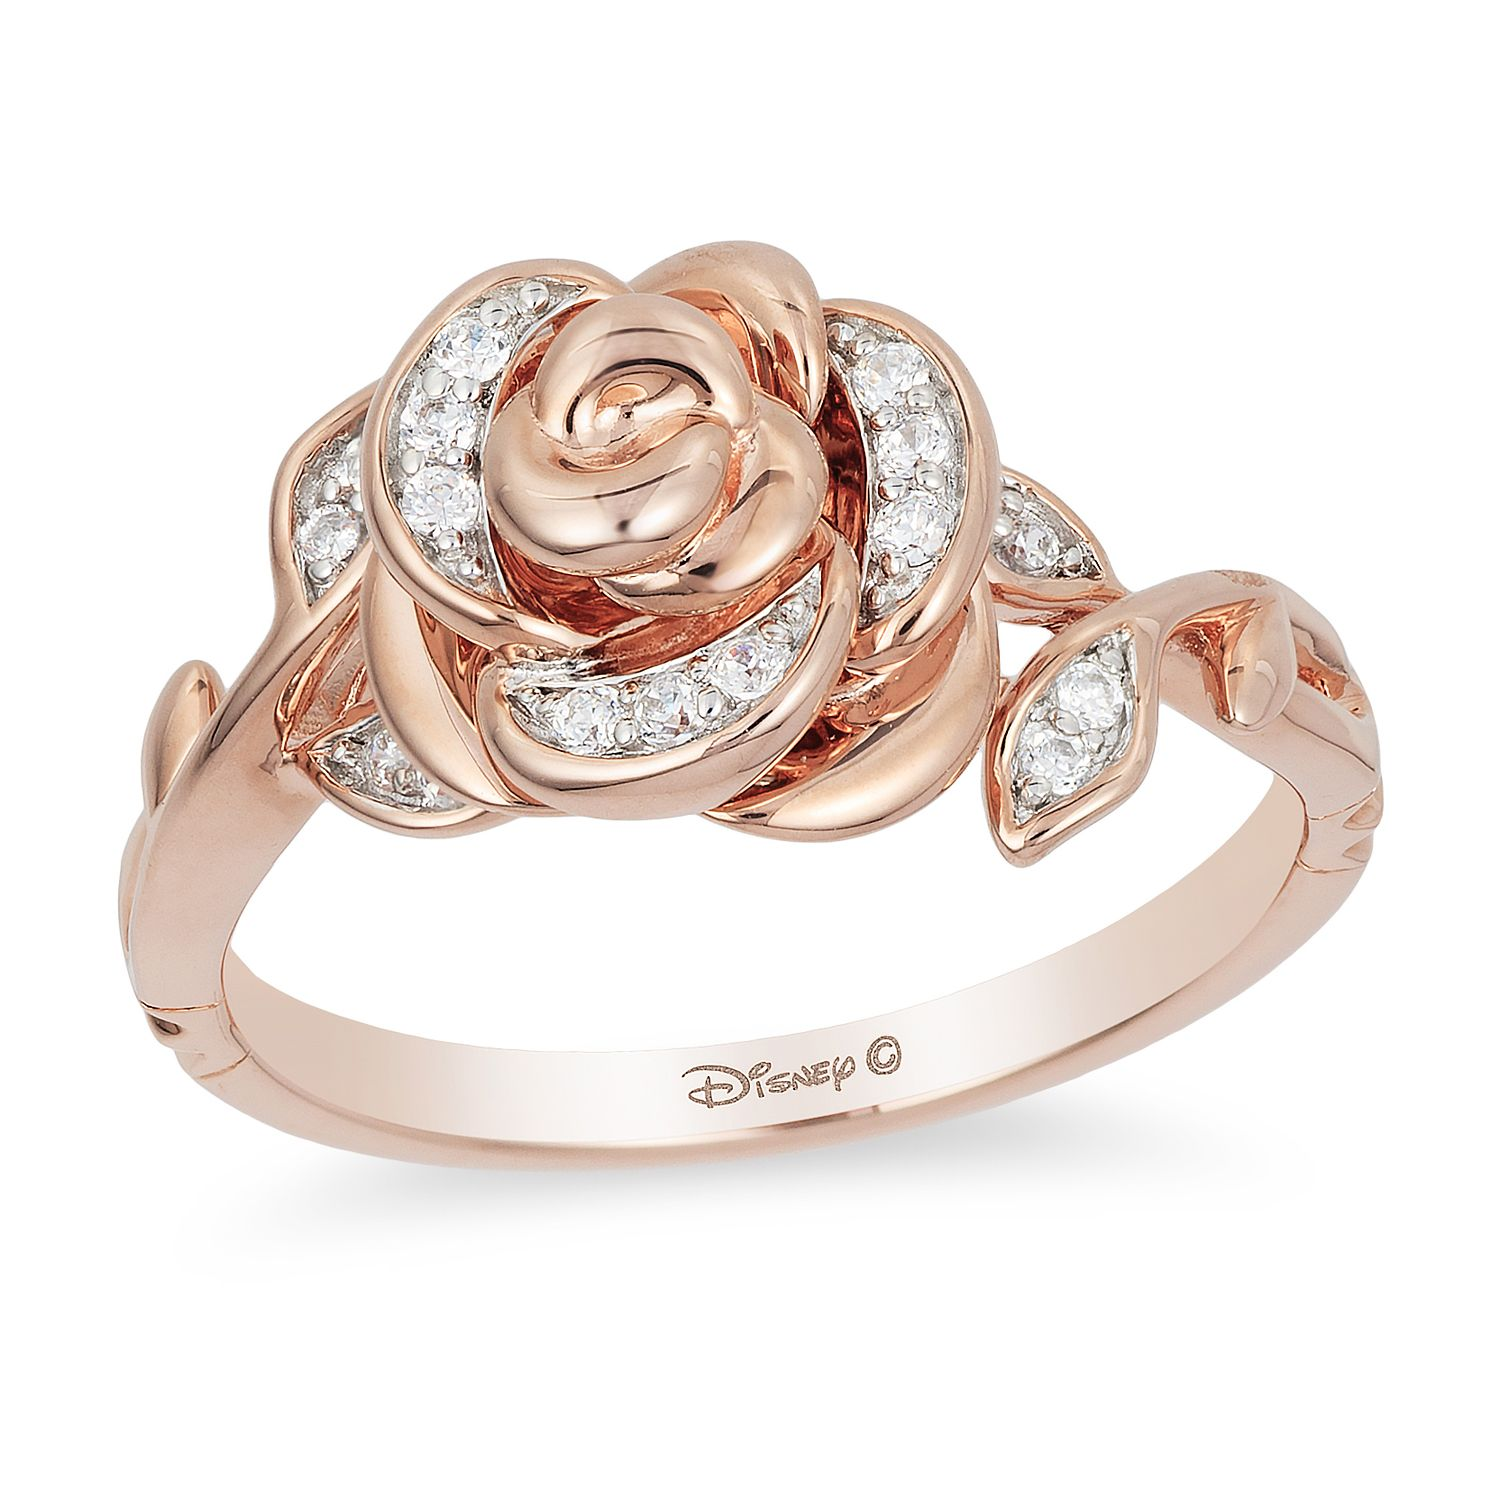 rings engagement to the bride for gold brides gallery be rose romantic